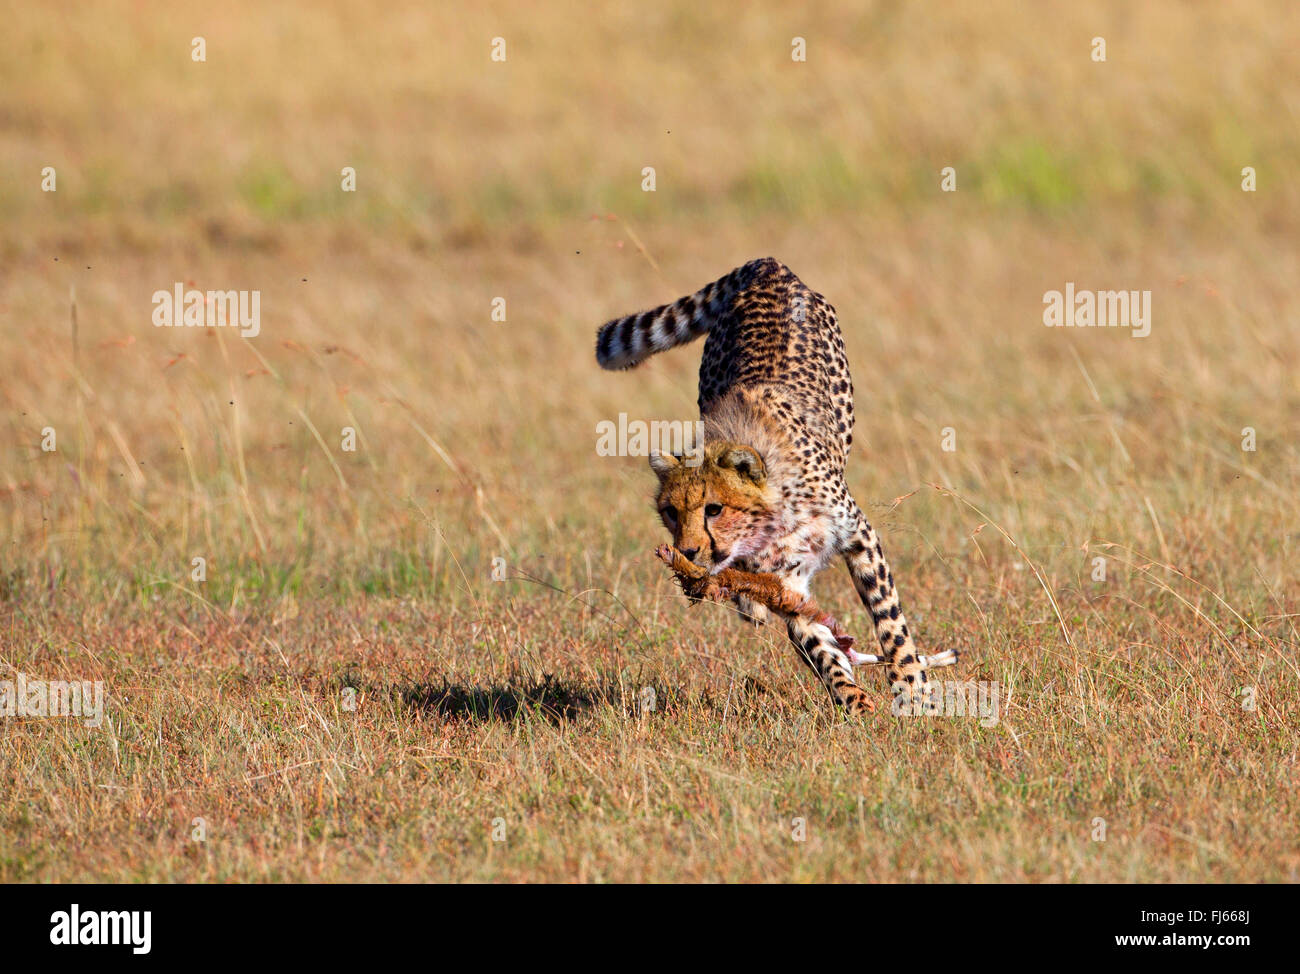 cheetah (Acinonyx jubatus), runs away with part of a cadaver in its mouth, Kenya, Masai Mara National Park - Stock Image